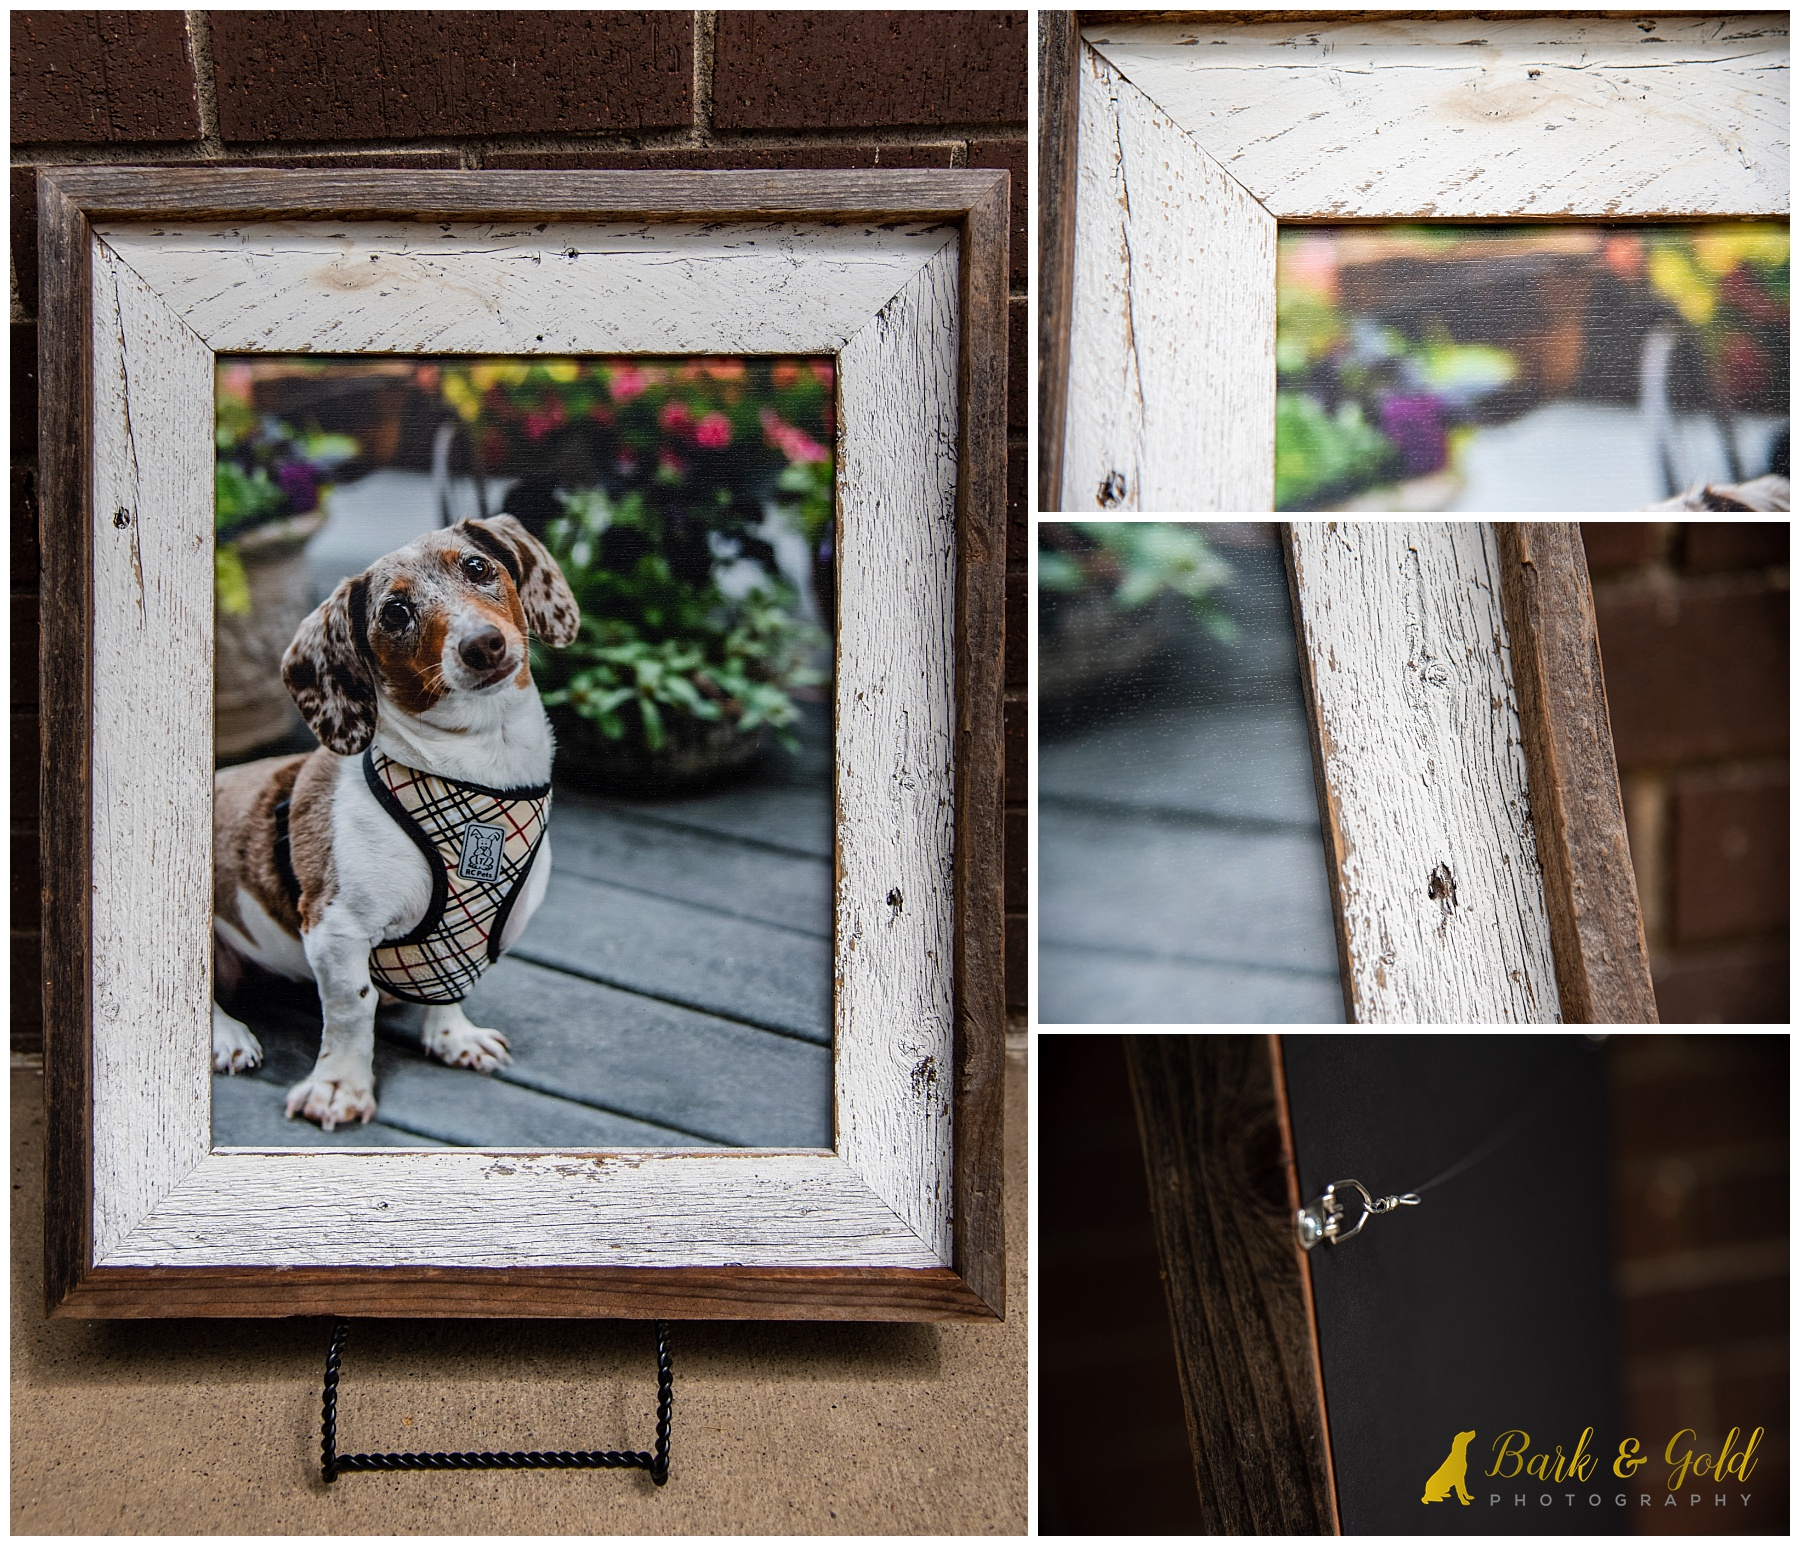 detailing on portrait of dachshund puppy in barnwood frame